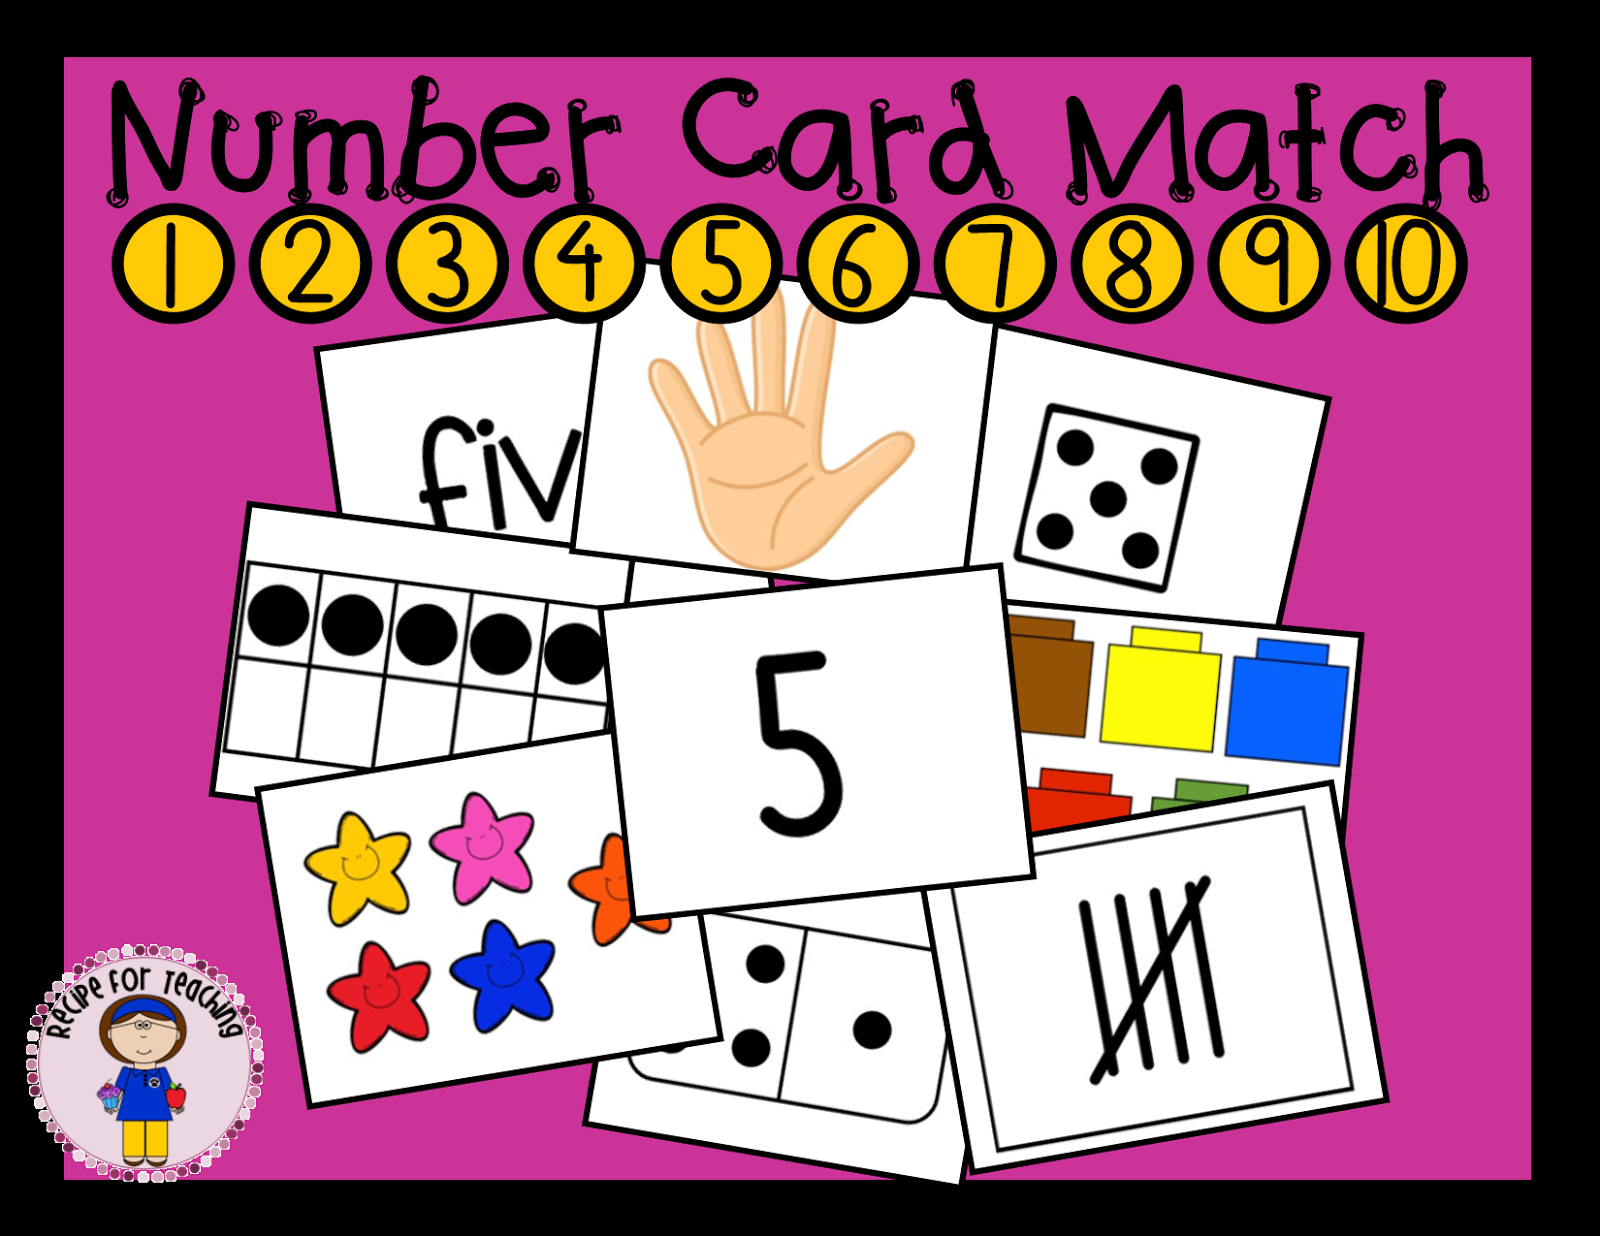 http://www.teacherspayteachers.com/Product/Number-Card-Match-1443237